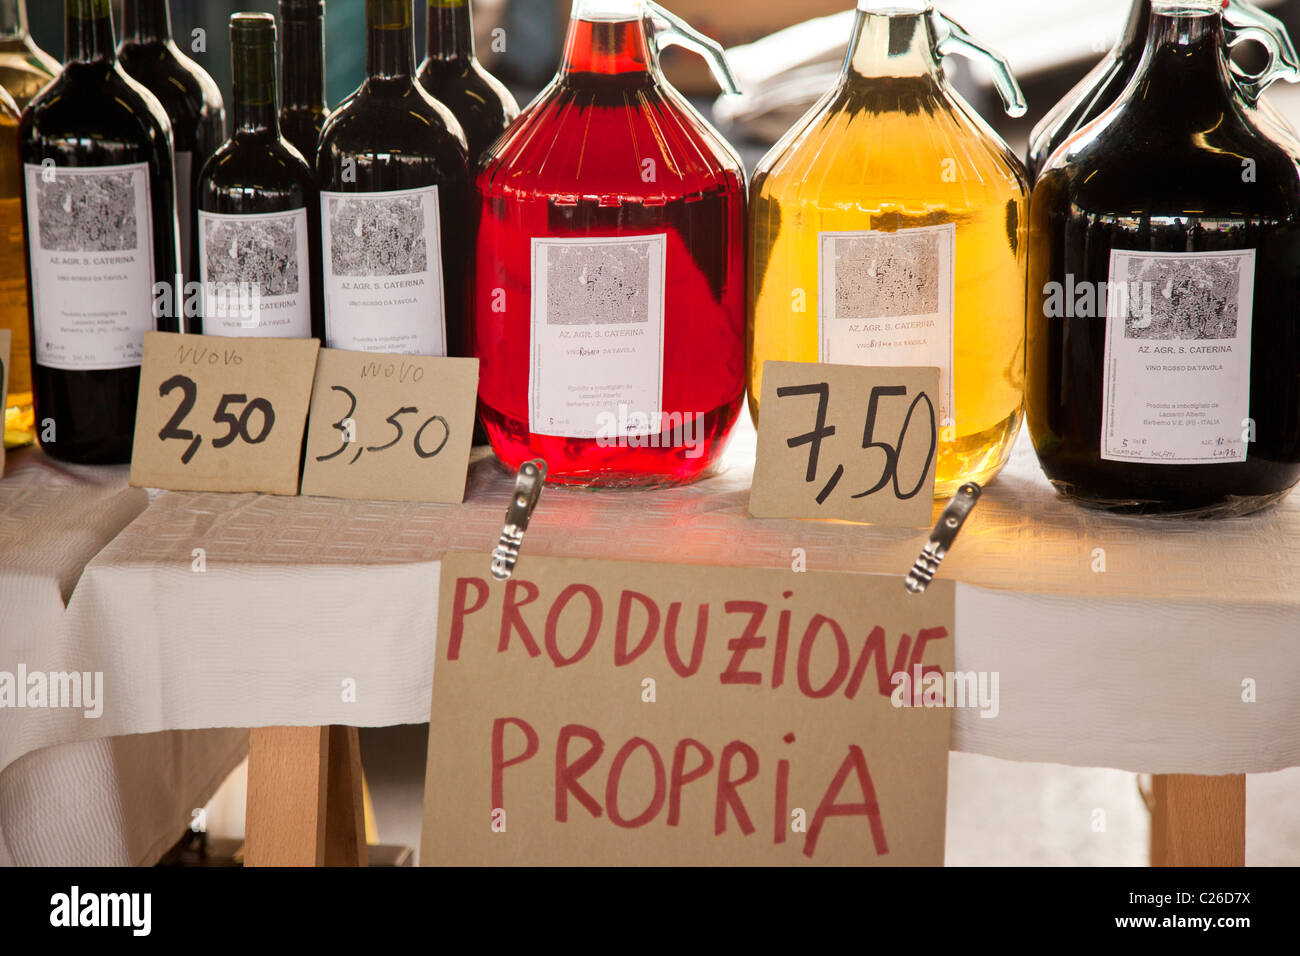 Bottles of local wine displayed at a market in Florence Italy. - Stock Image